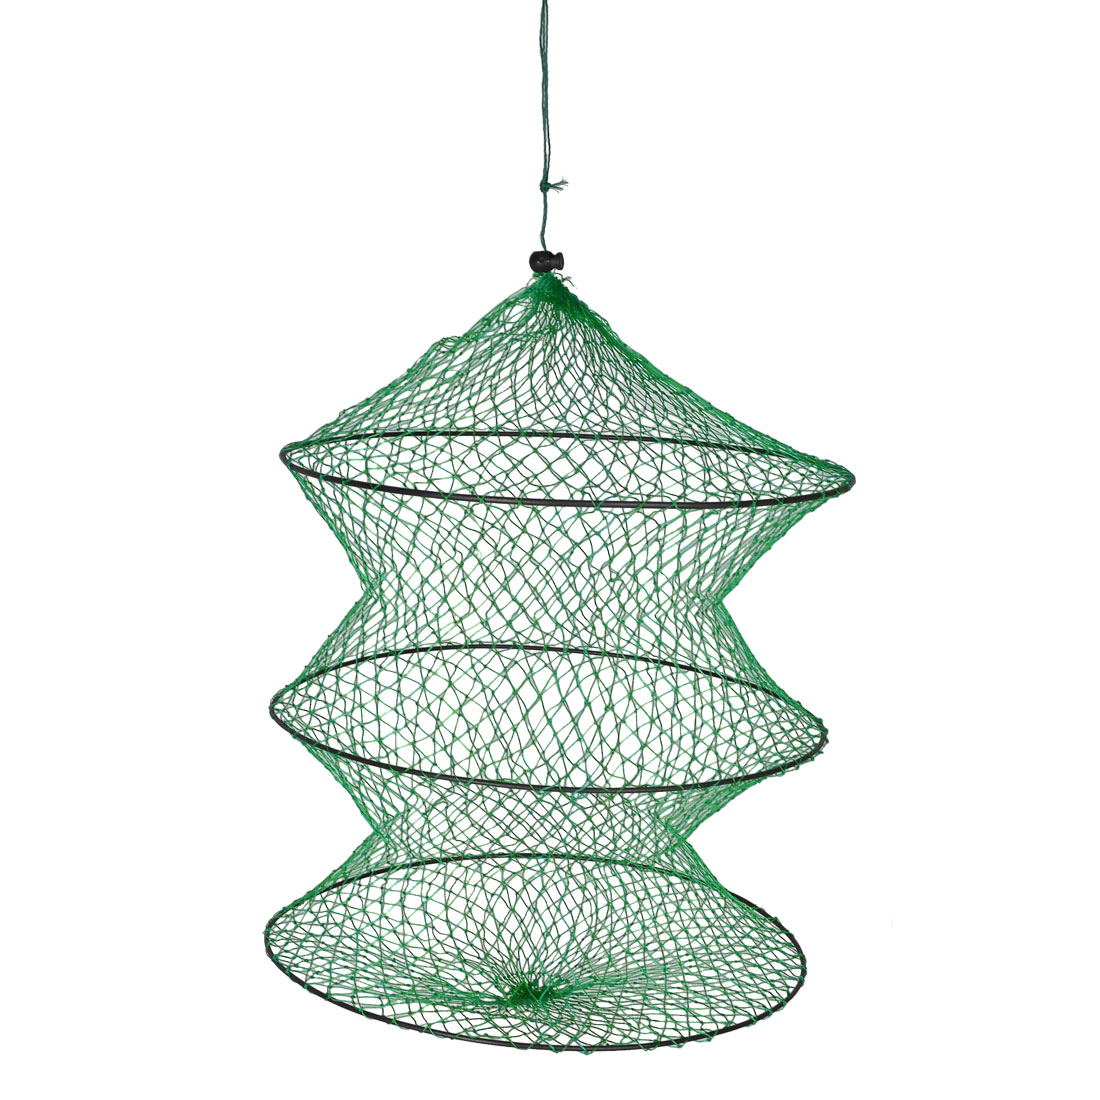 Green Folding 2 Section Crab Lobster Fish Basket Fishing Net